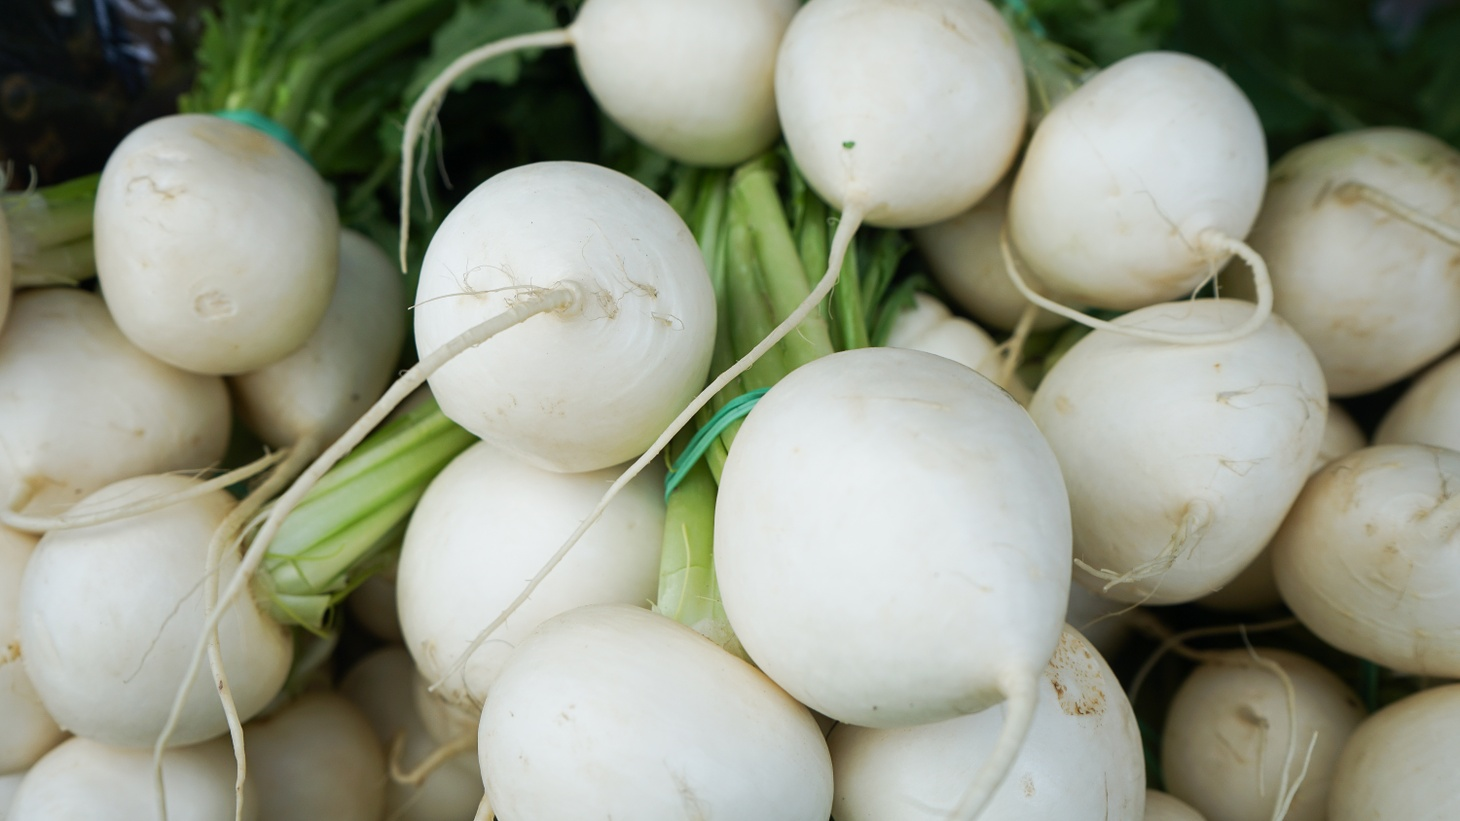 """County Line Harvest has two Japanese varieties of turnips on the table at the market. The """"Tokyo turnips"""" have a golf ball shape, and their size and shape can affect flavor."""